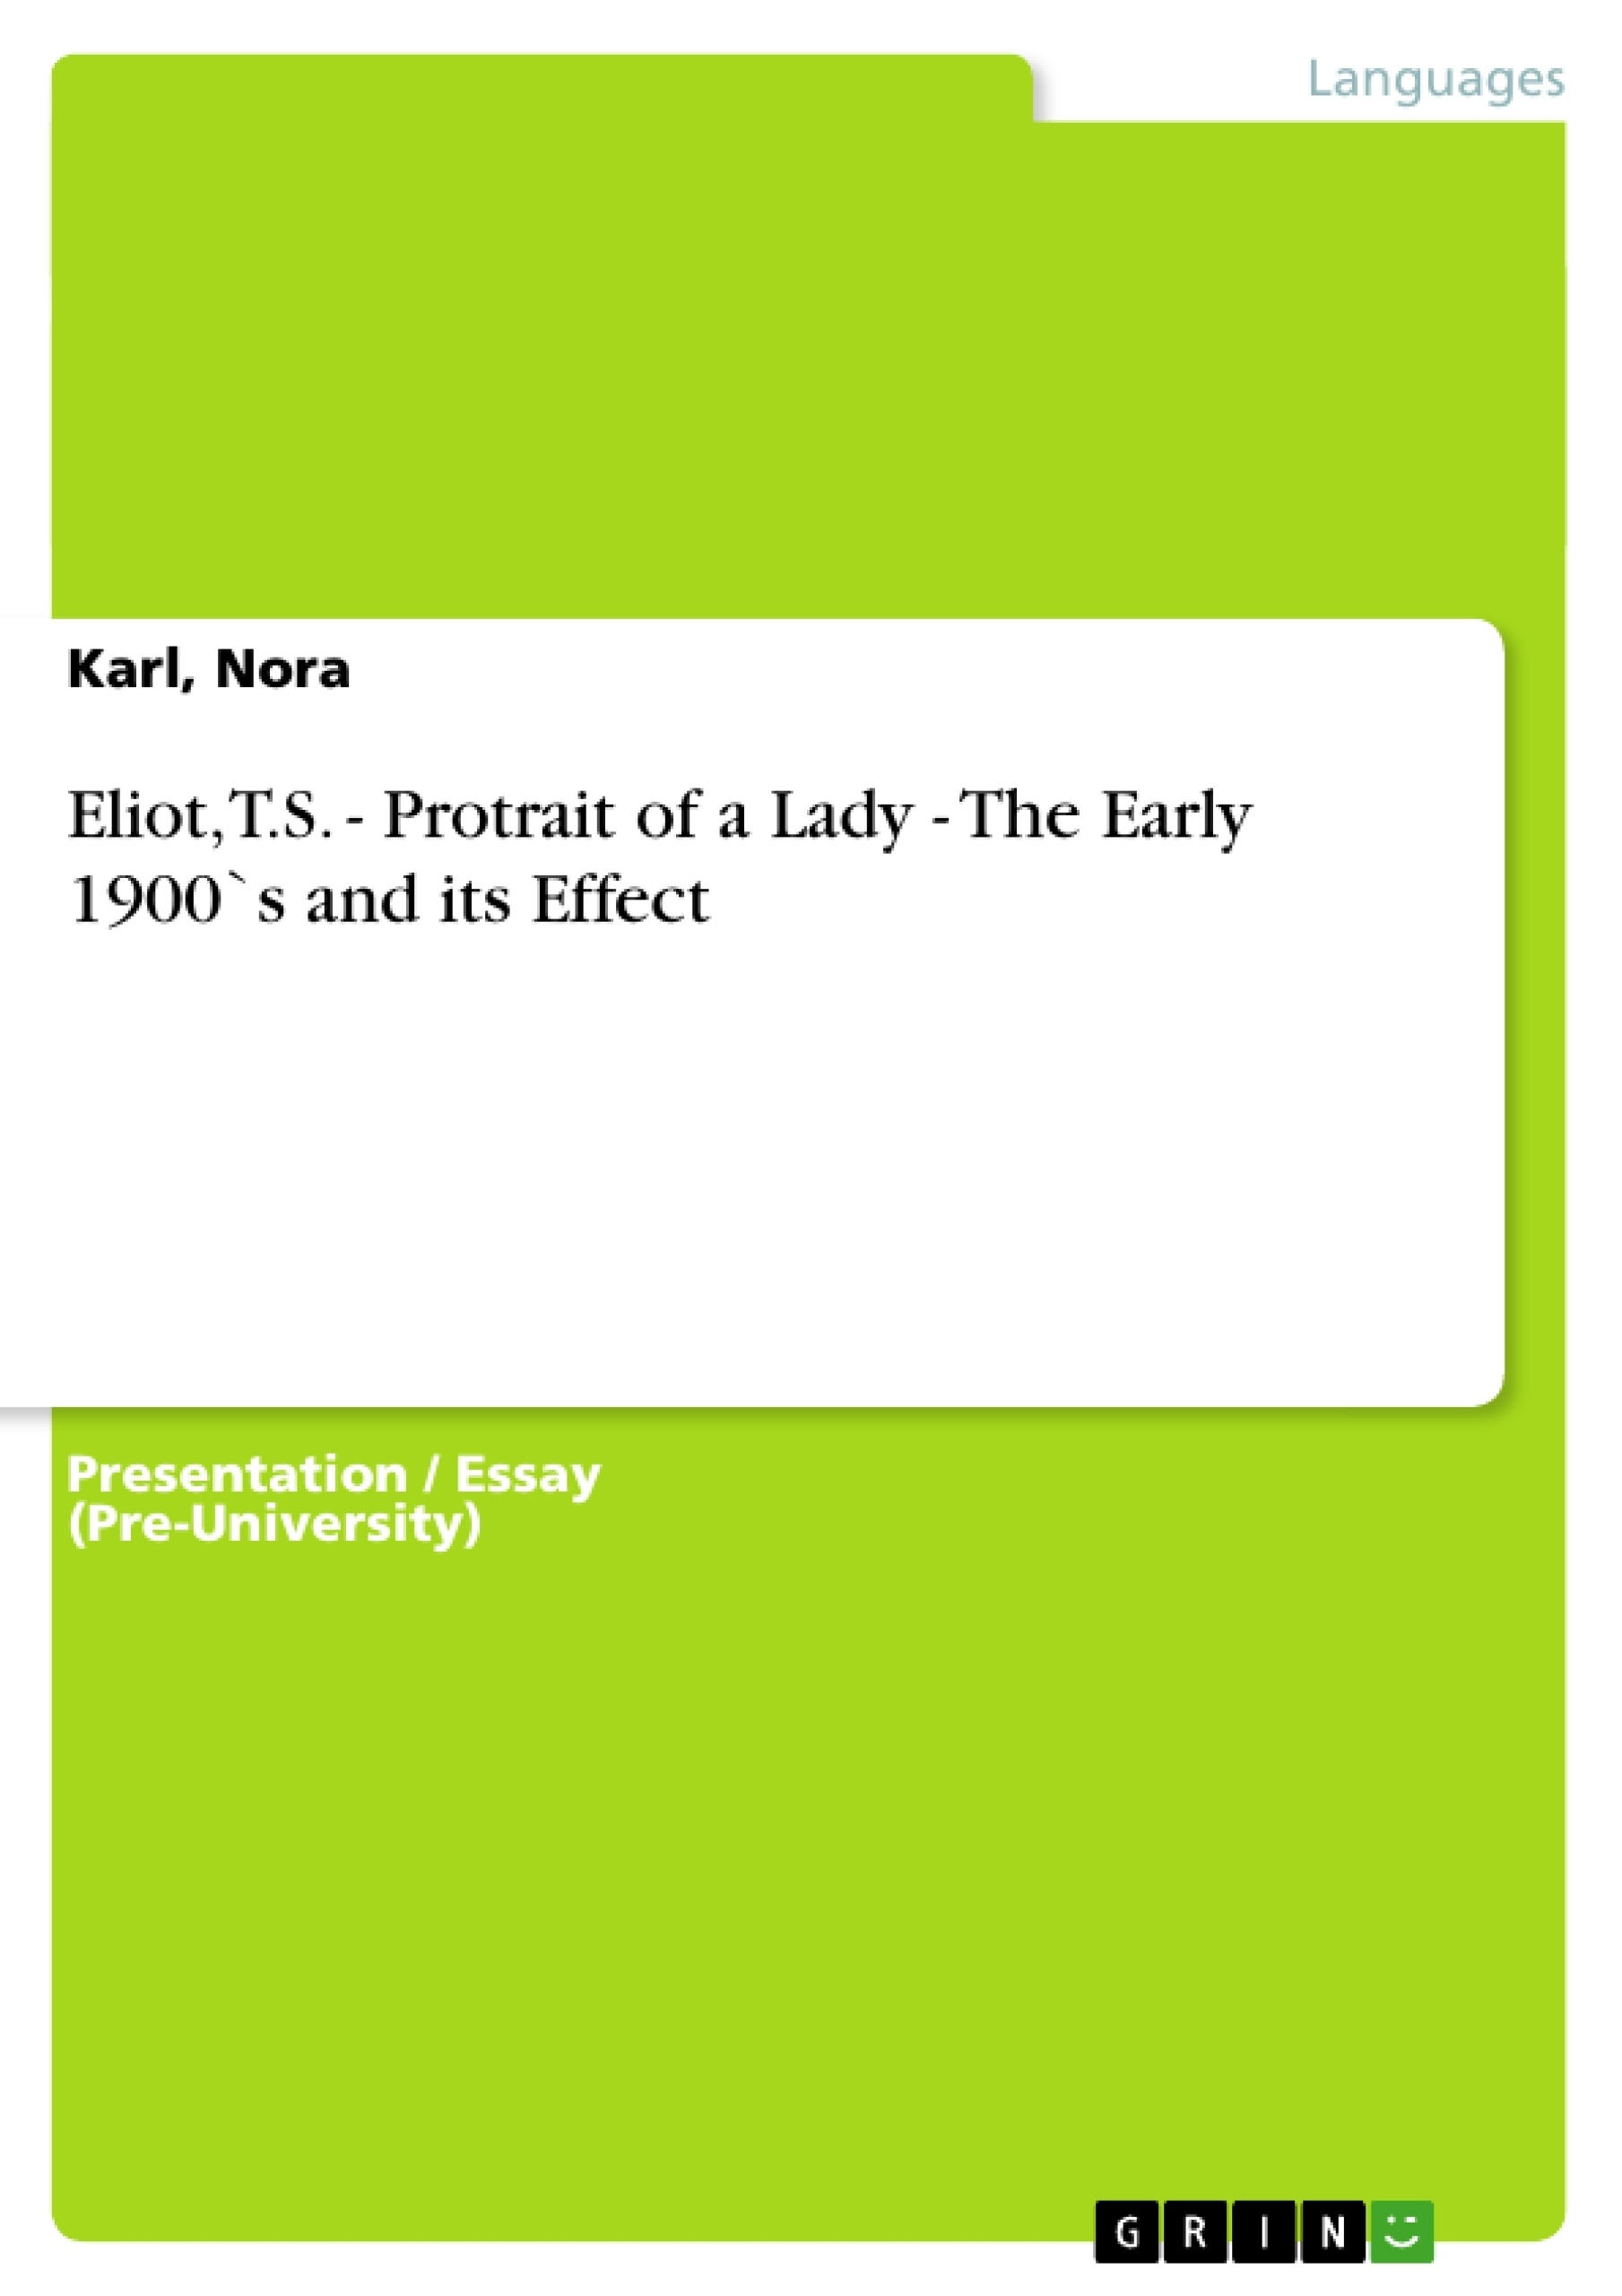 Title: Eliot, T.S. - Protrait of a Lady - The Early 1900`s and its Effect